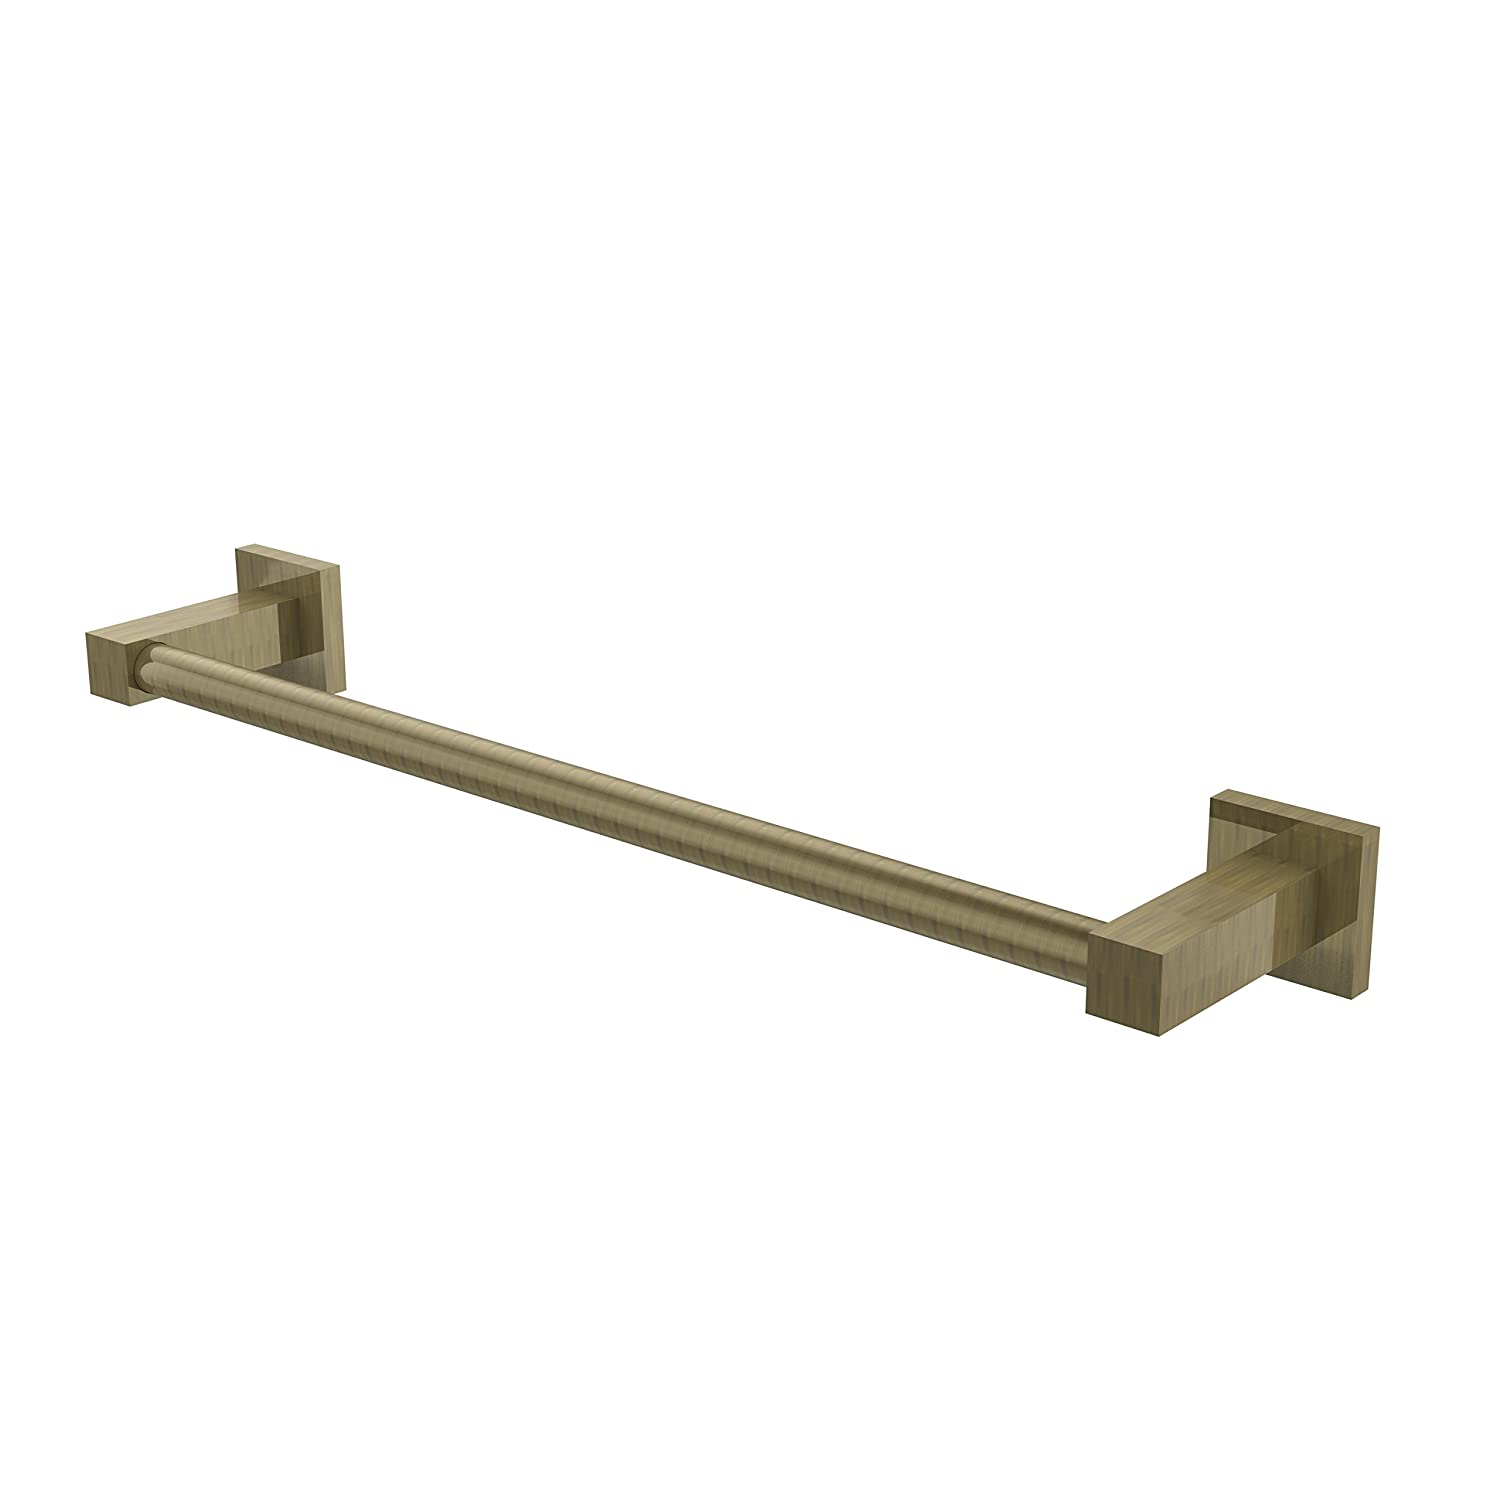 Allied Brass MT-41-18-ORB Montero Collection Contemporary 18 Inch Towel Bar Oil Rubbed Bronze